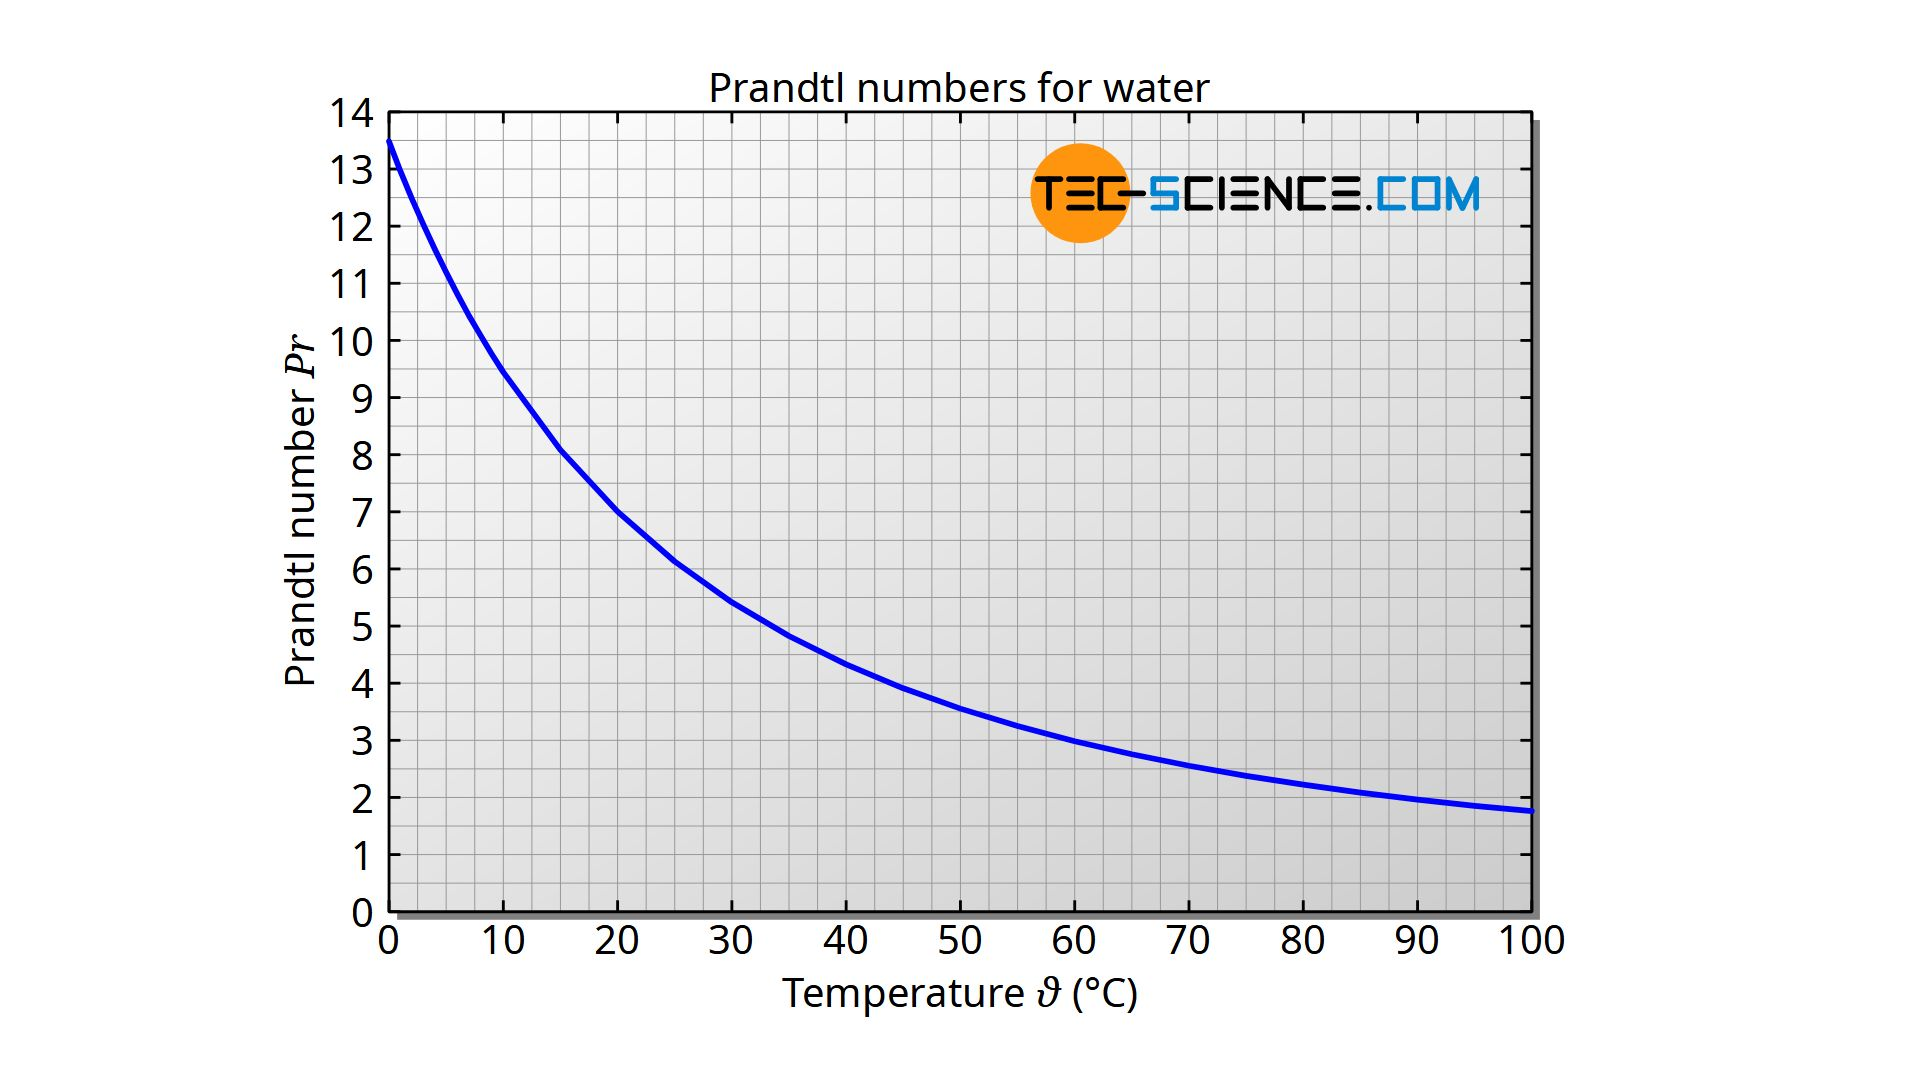 Prandtl numbers for water as a function of temperature